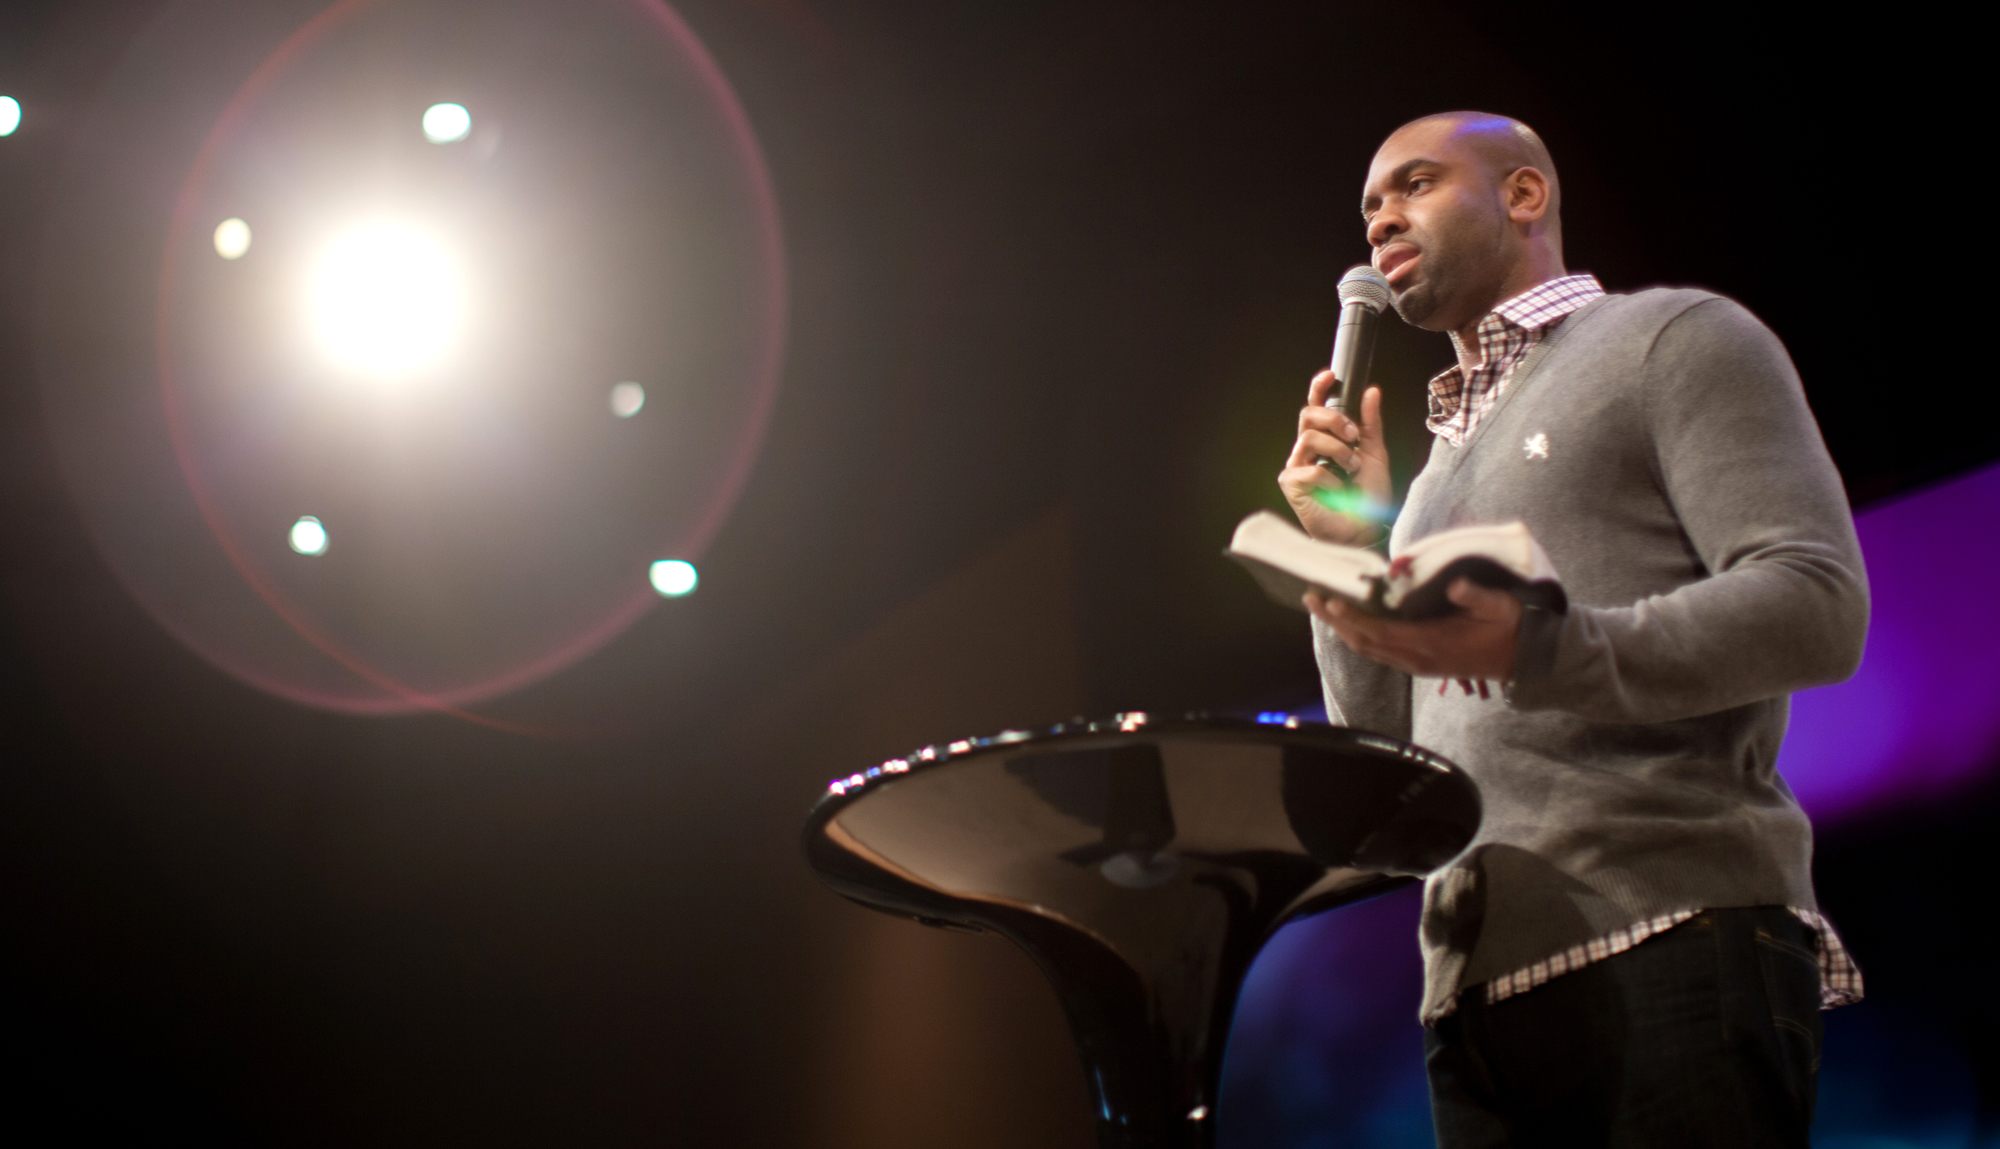 10 Things Great Preachers Do Differently - Lewis Center for